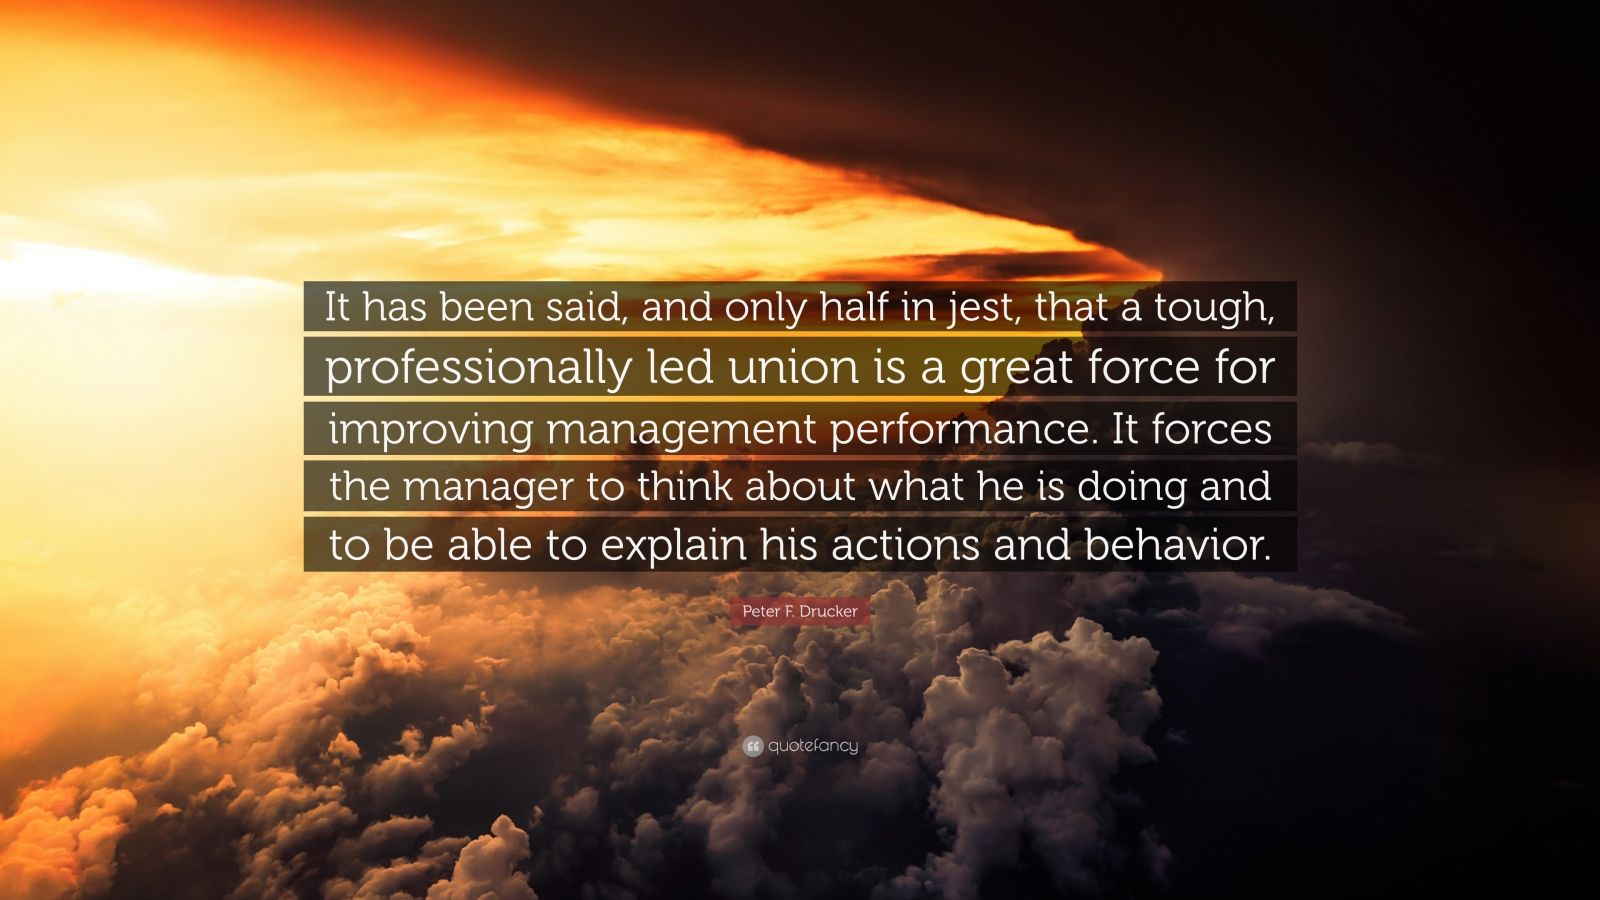 "Peter F. Drucker Quote: ""It has been said, and only half in jest, that a tough, professionally led union is a great force for improving management performance. It forces the manager to think about what he is doing and to be able to explain his actions and behavior."""